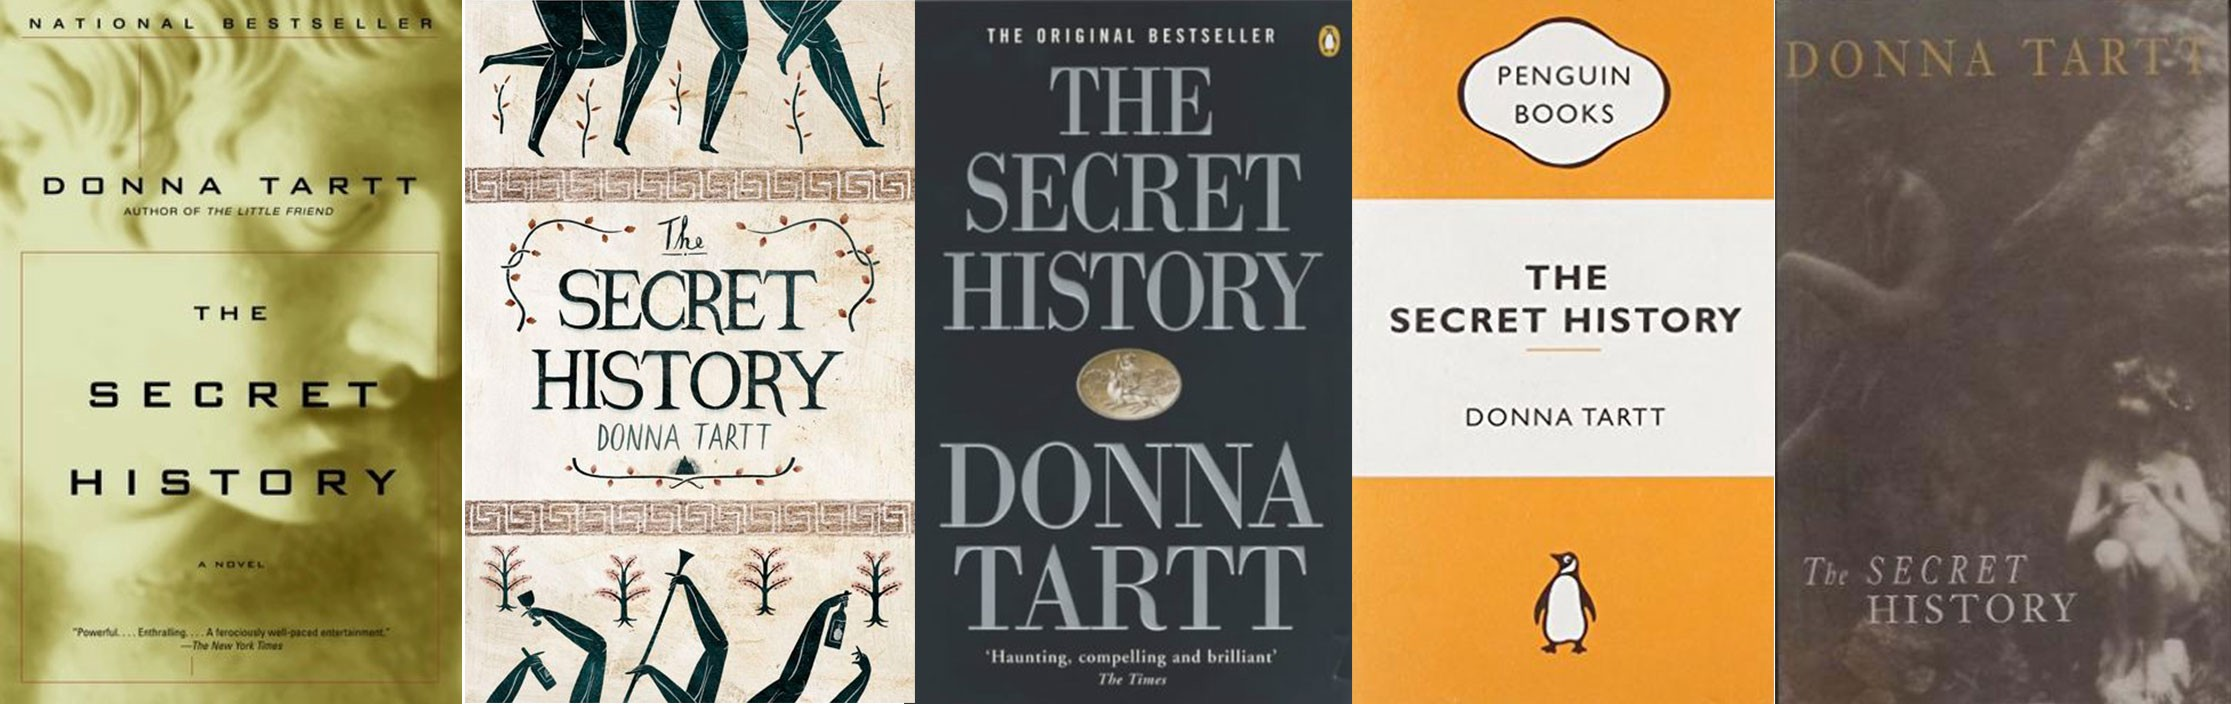 Redesigning The Secret History by Donna Tartt - David Higdon